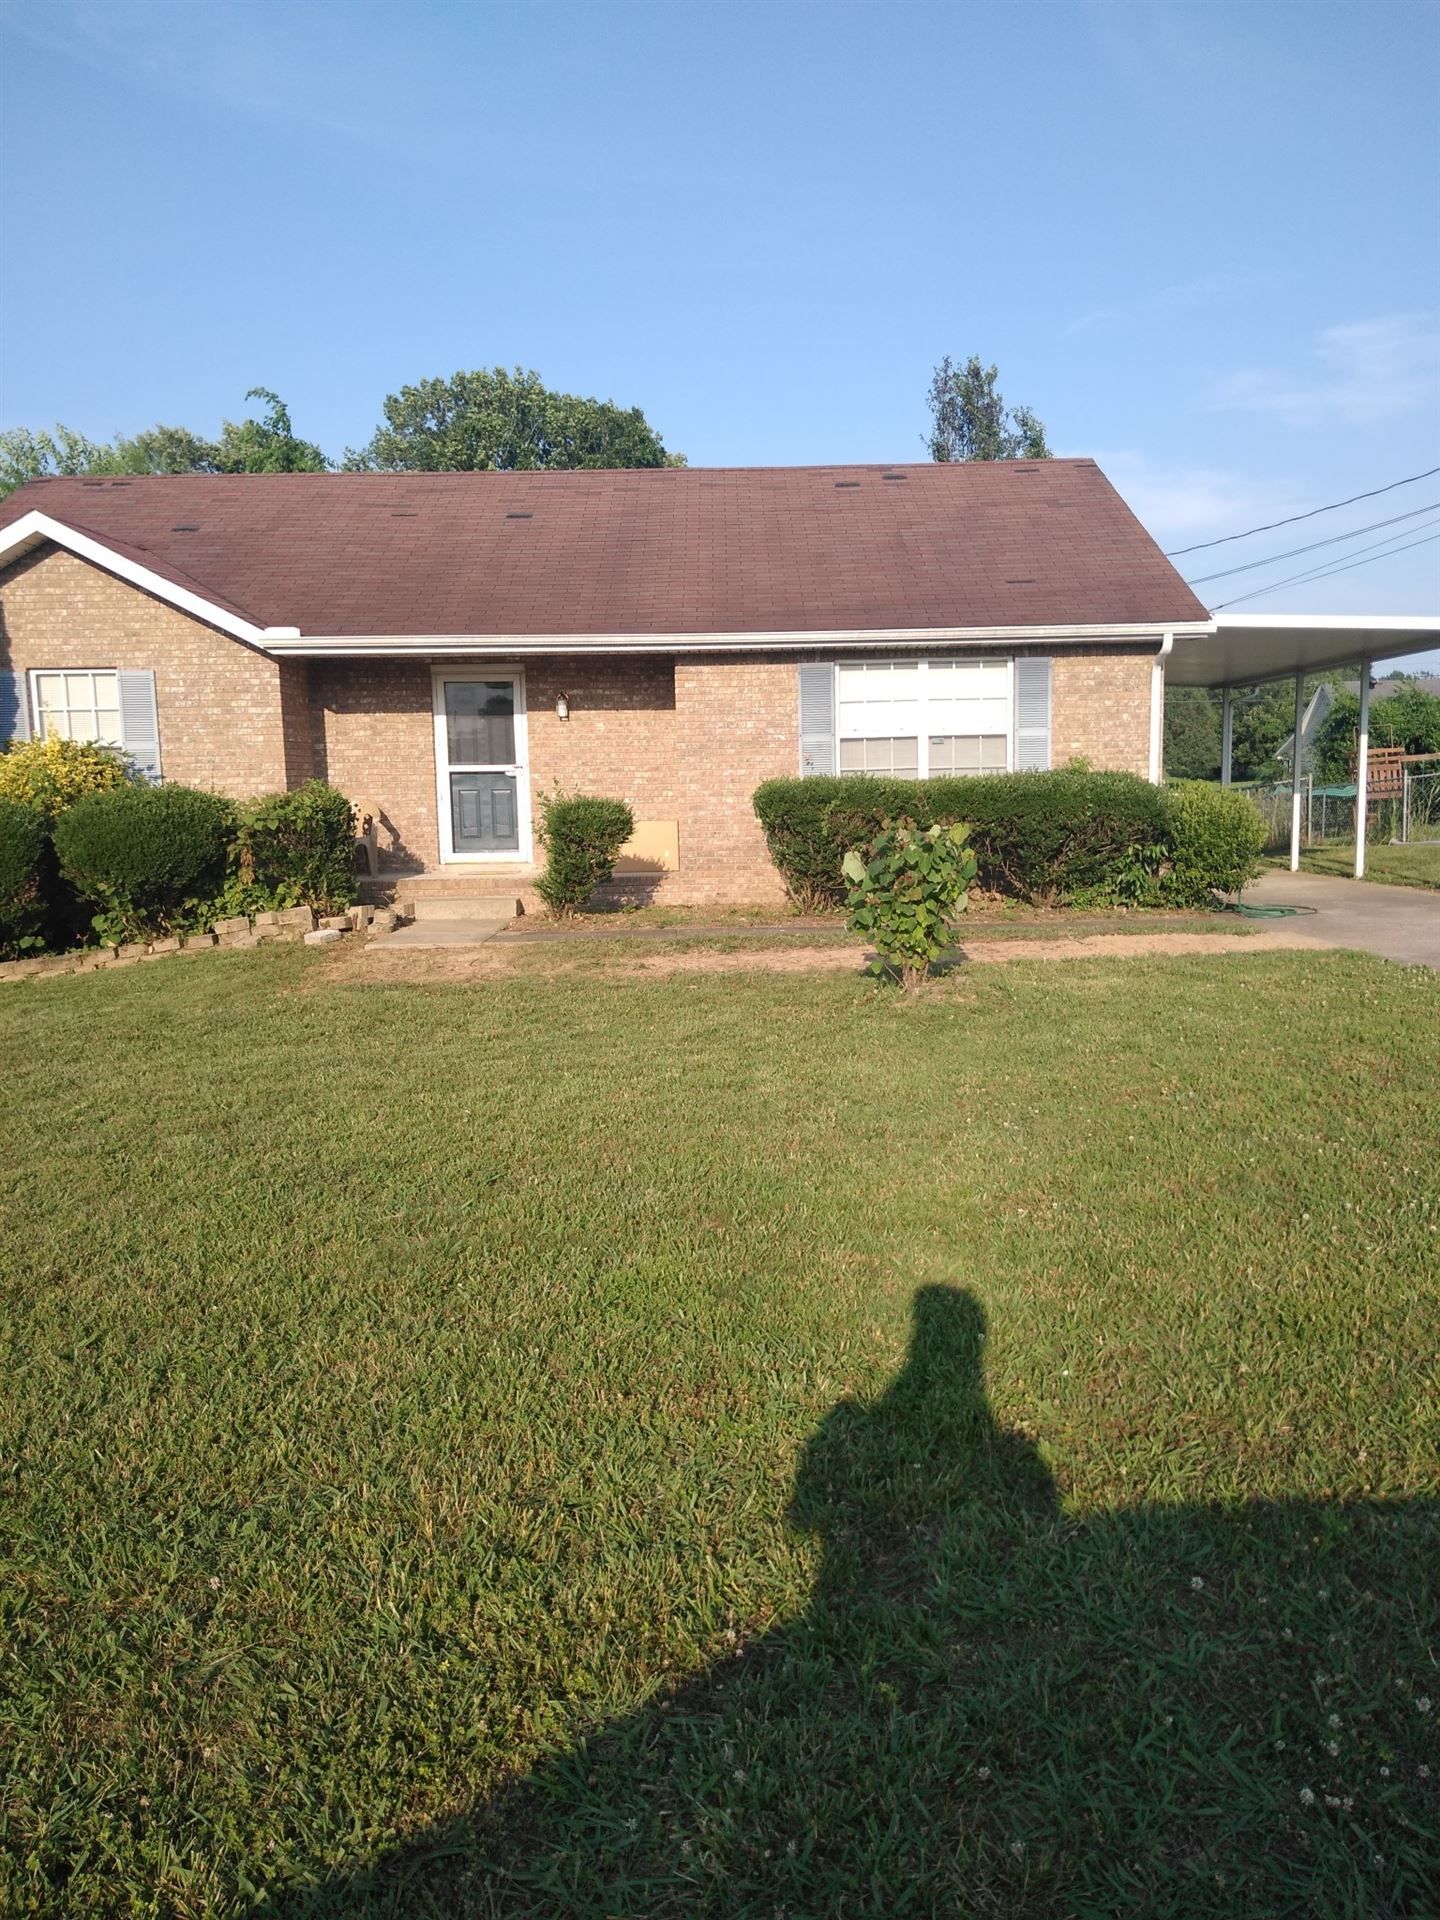 1307 Jared Ray Dr, Clarksville, TN 37042 - MLS#: 2262197